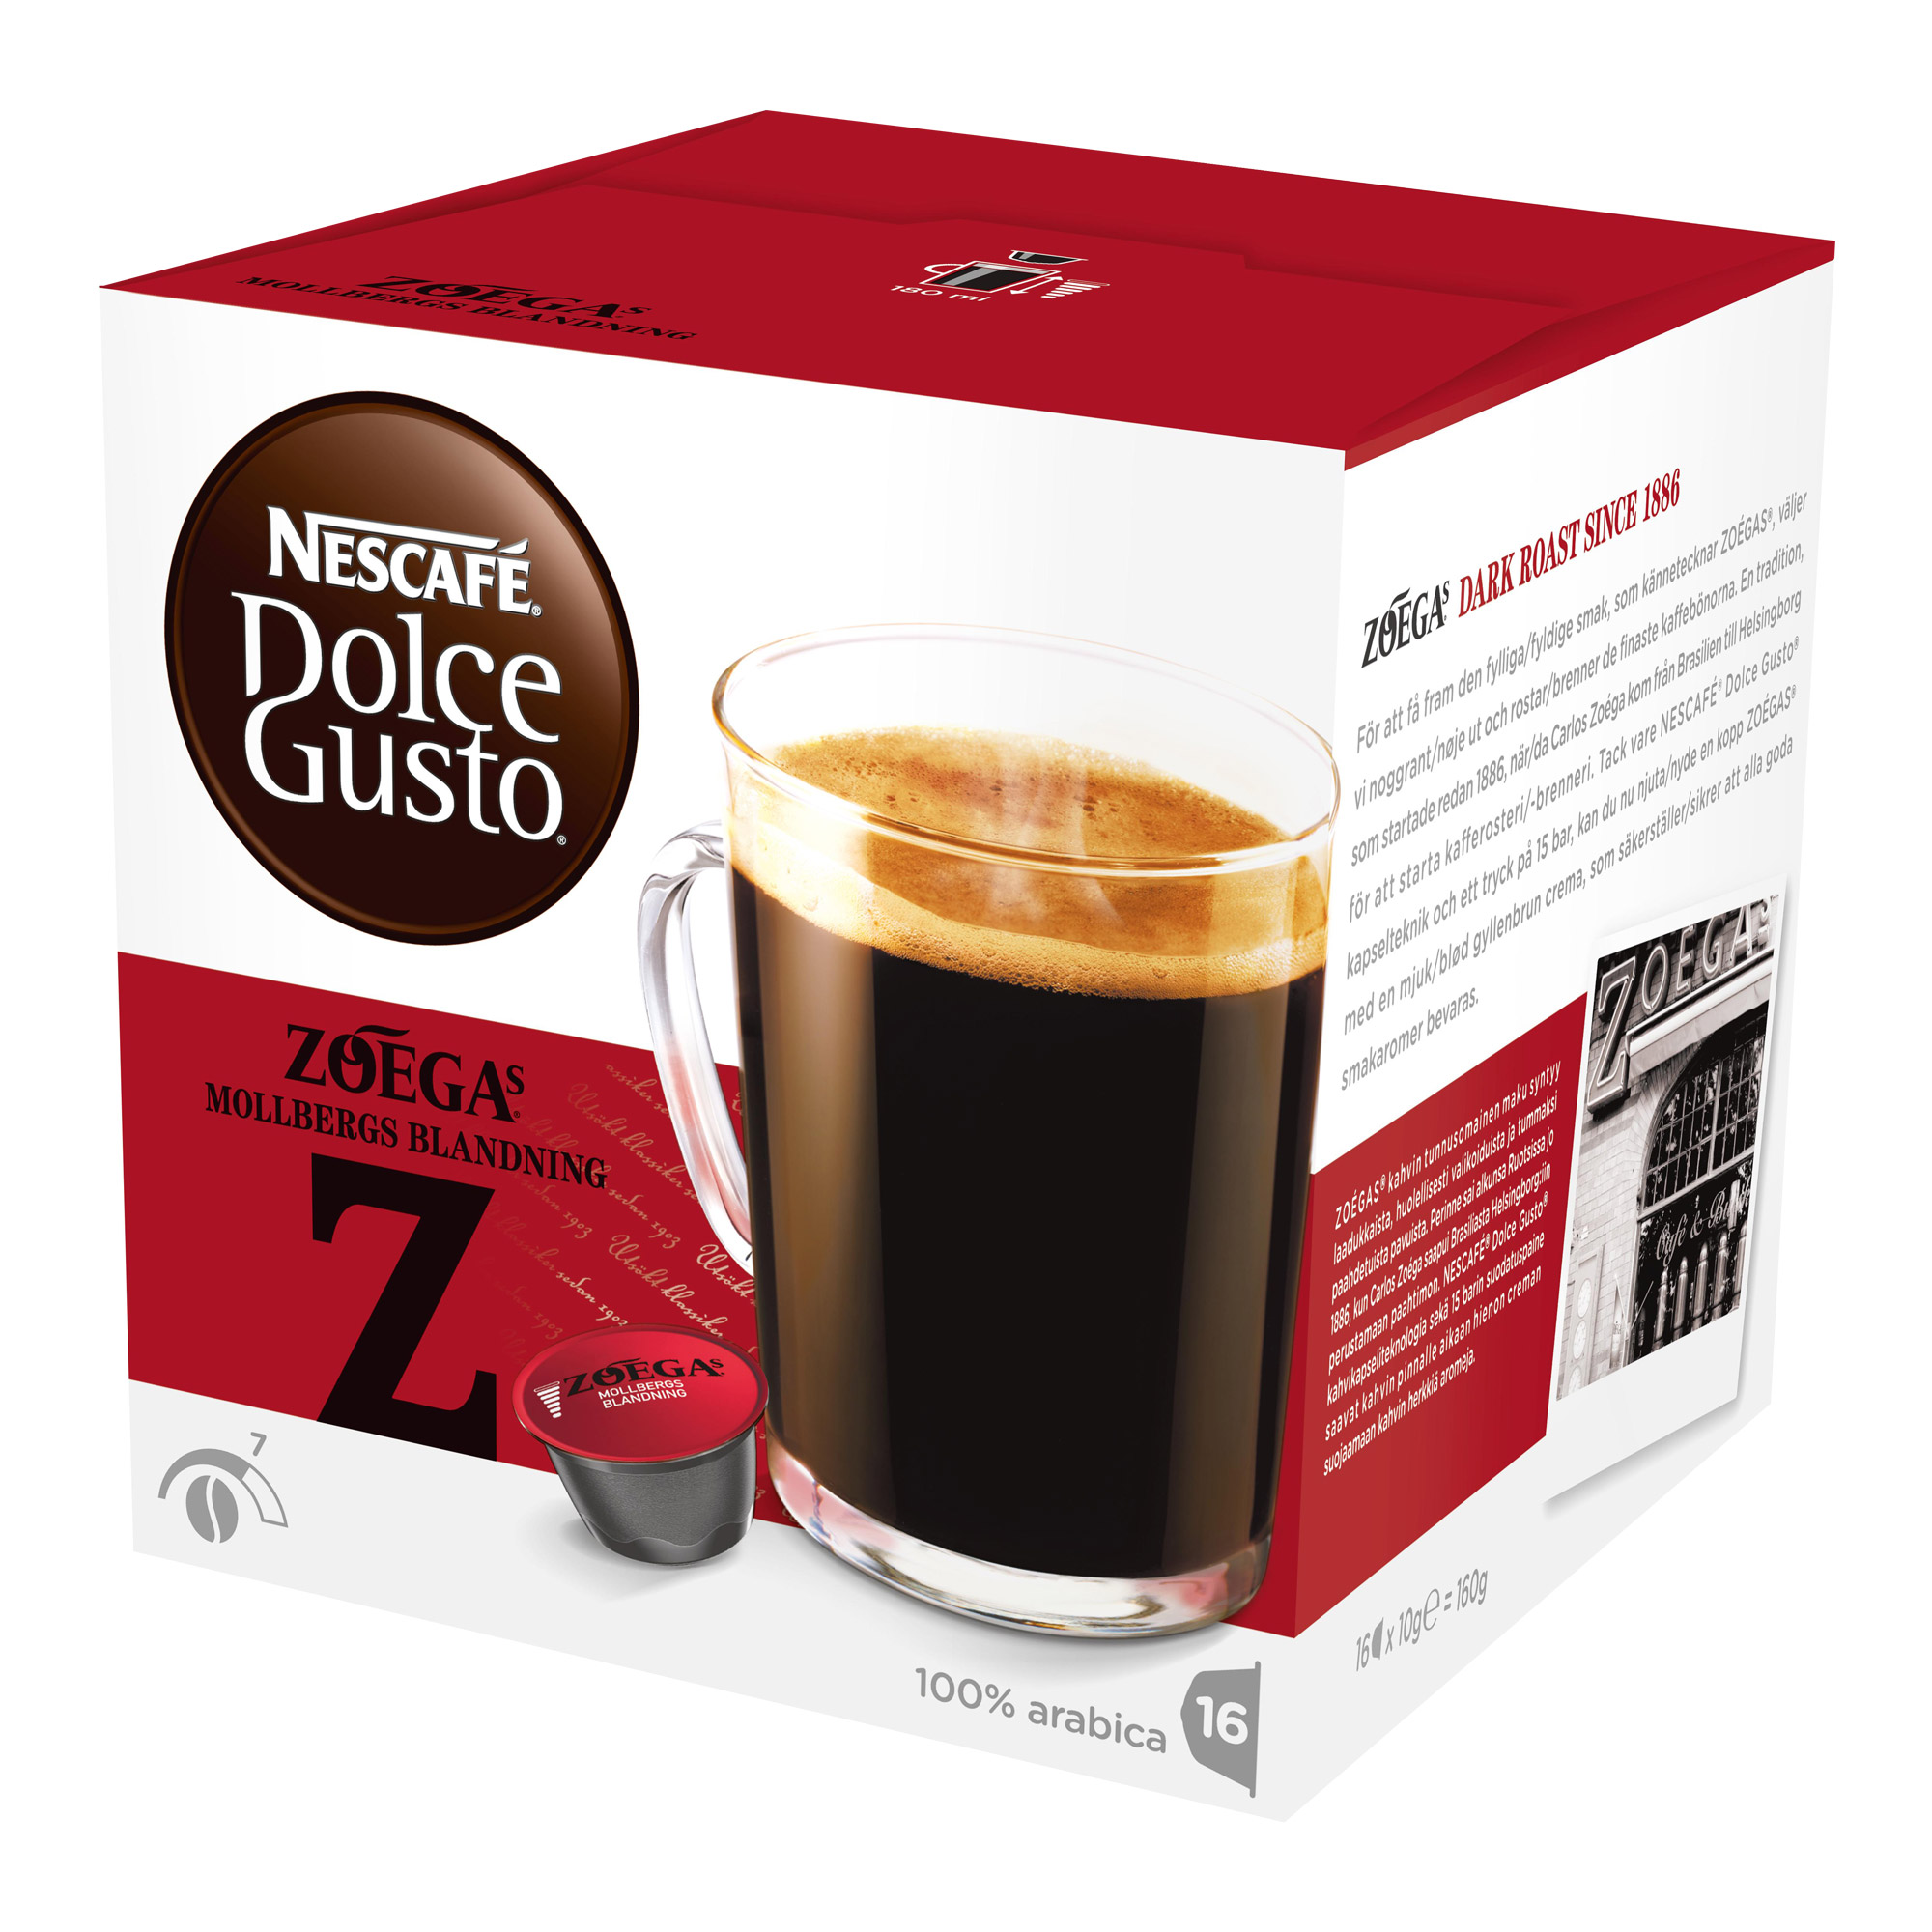 nescaf dolce gusto zoegas mollbergs blandning 16 capsules at about shop. Black Bedroom Furniture Sets. Home Design Ideas